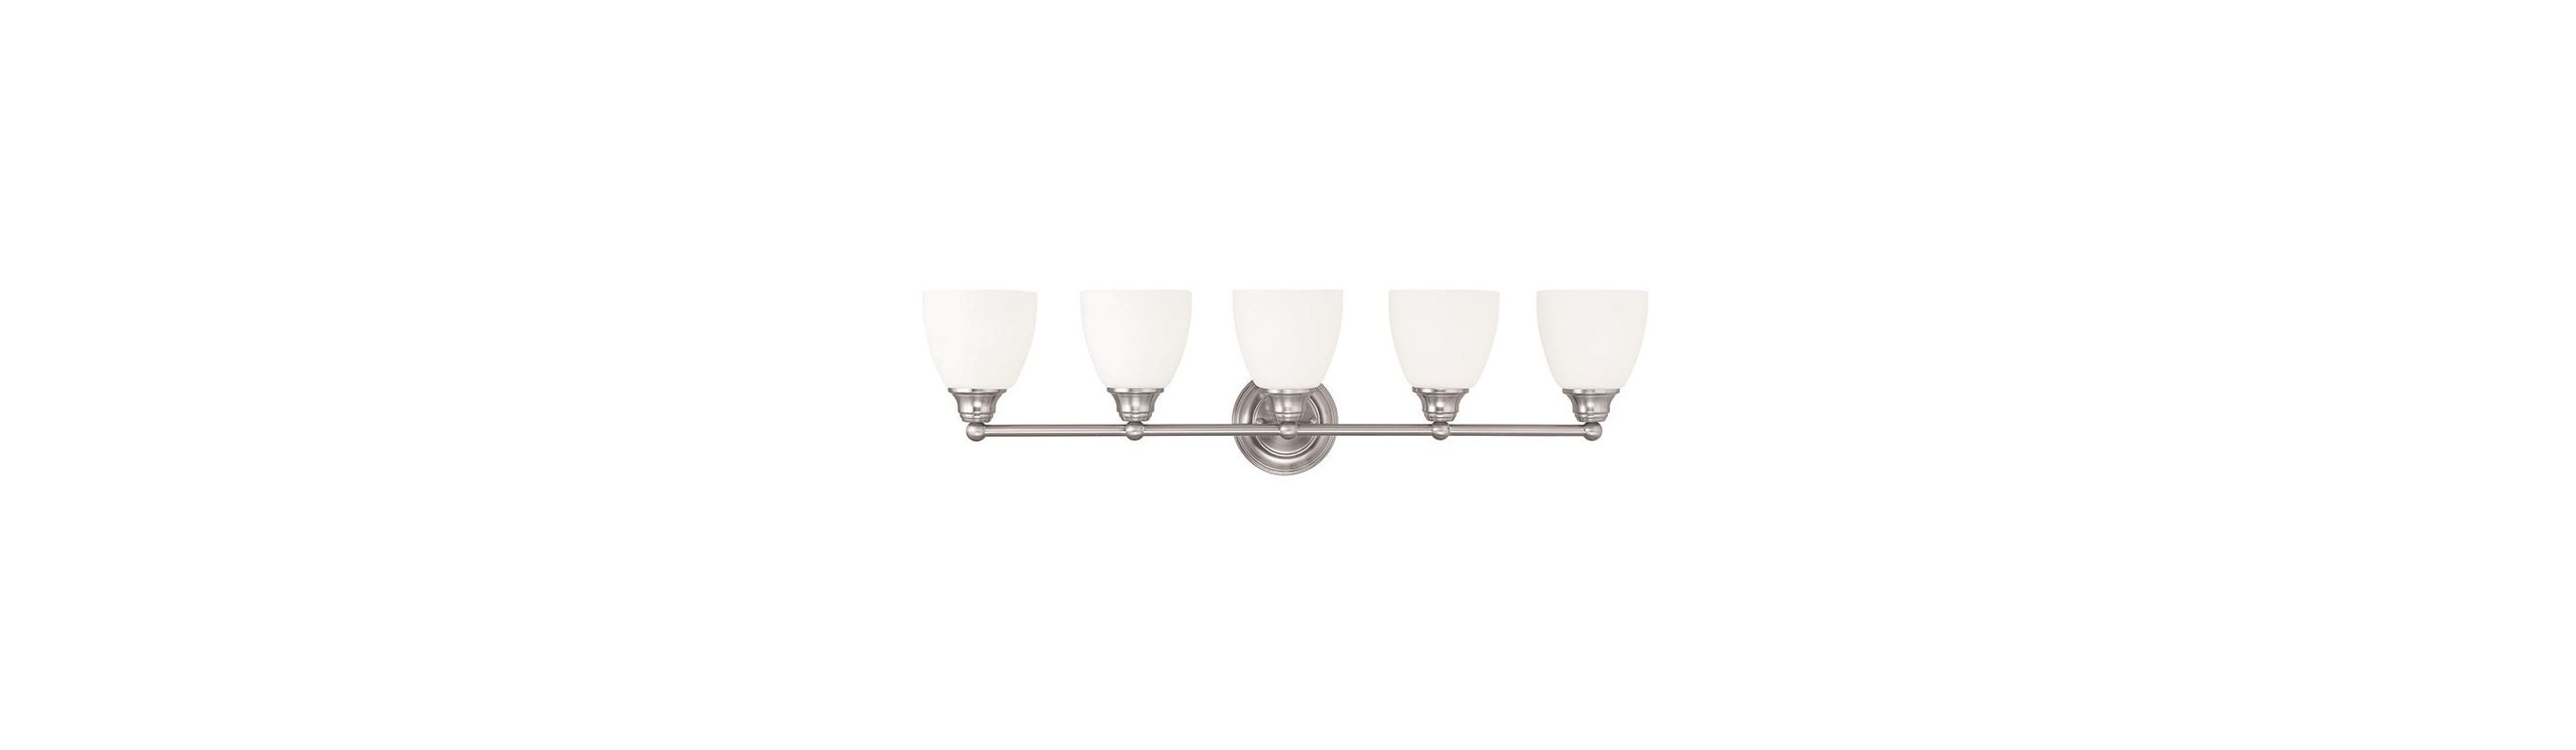 Livex Lighting 13665 Somerville 5 Light Bathroom Vanity Light Brushed